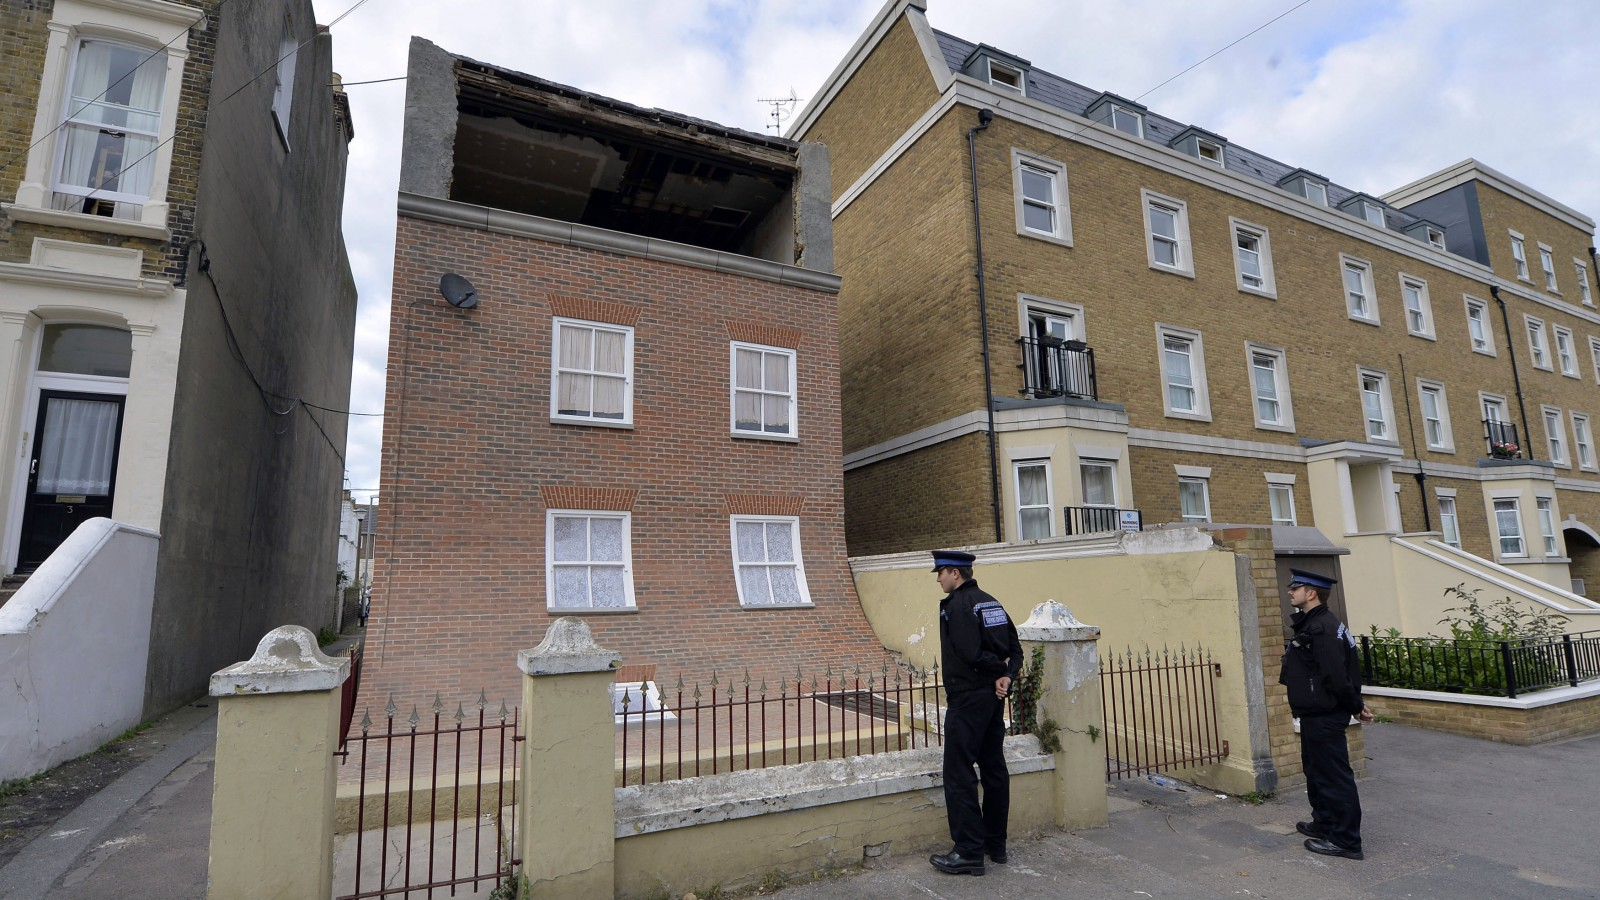 Two police community support officers look at a piece of public art, depicting a sliding house in a residential road in Margate, southern England October 9, 2013. The sculpture, entitled 'From the Knees of my Nose to the Belly of my Toes' was created by London-based artist Alex Chinneck, and will stand for a year. It was built using a Victorian house in the seaside town which was compulsorily purchased by the region's council after lying empty for eleven years.